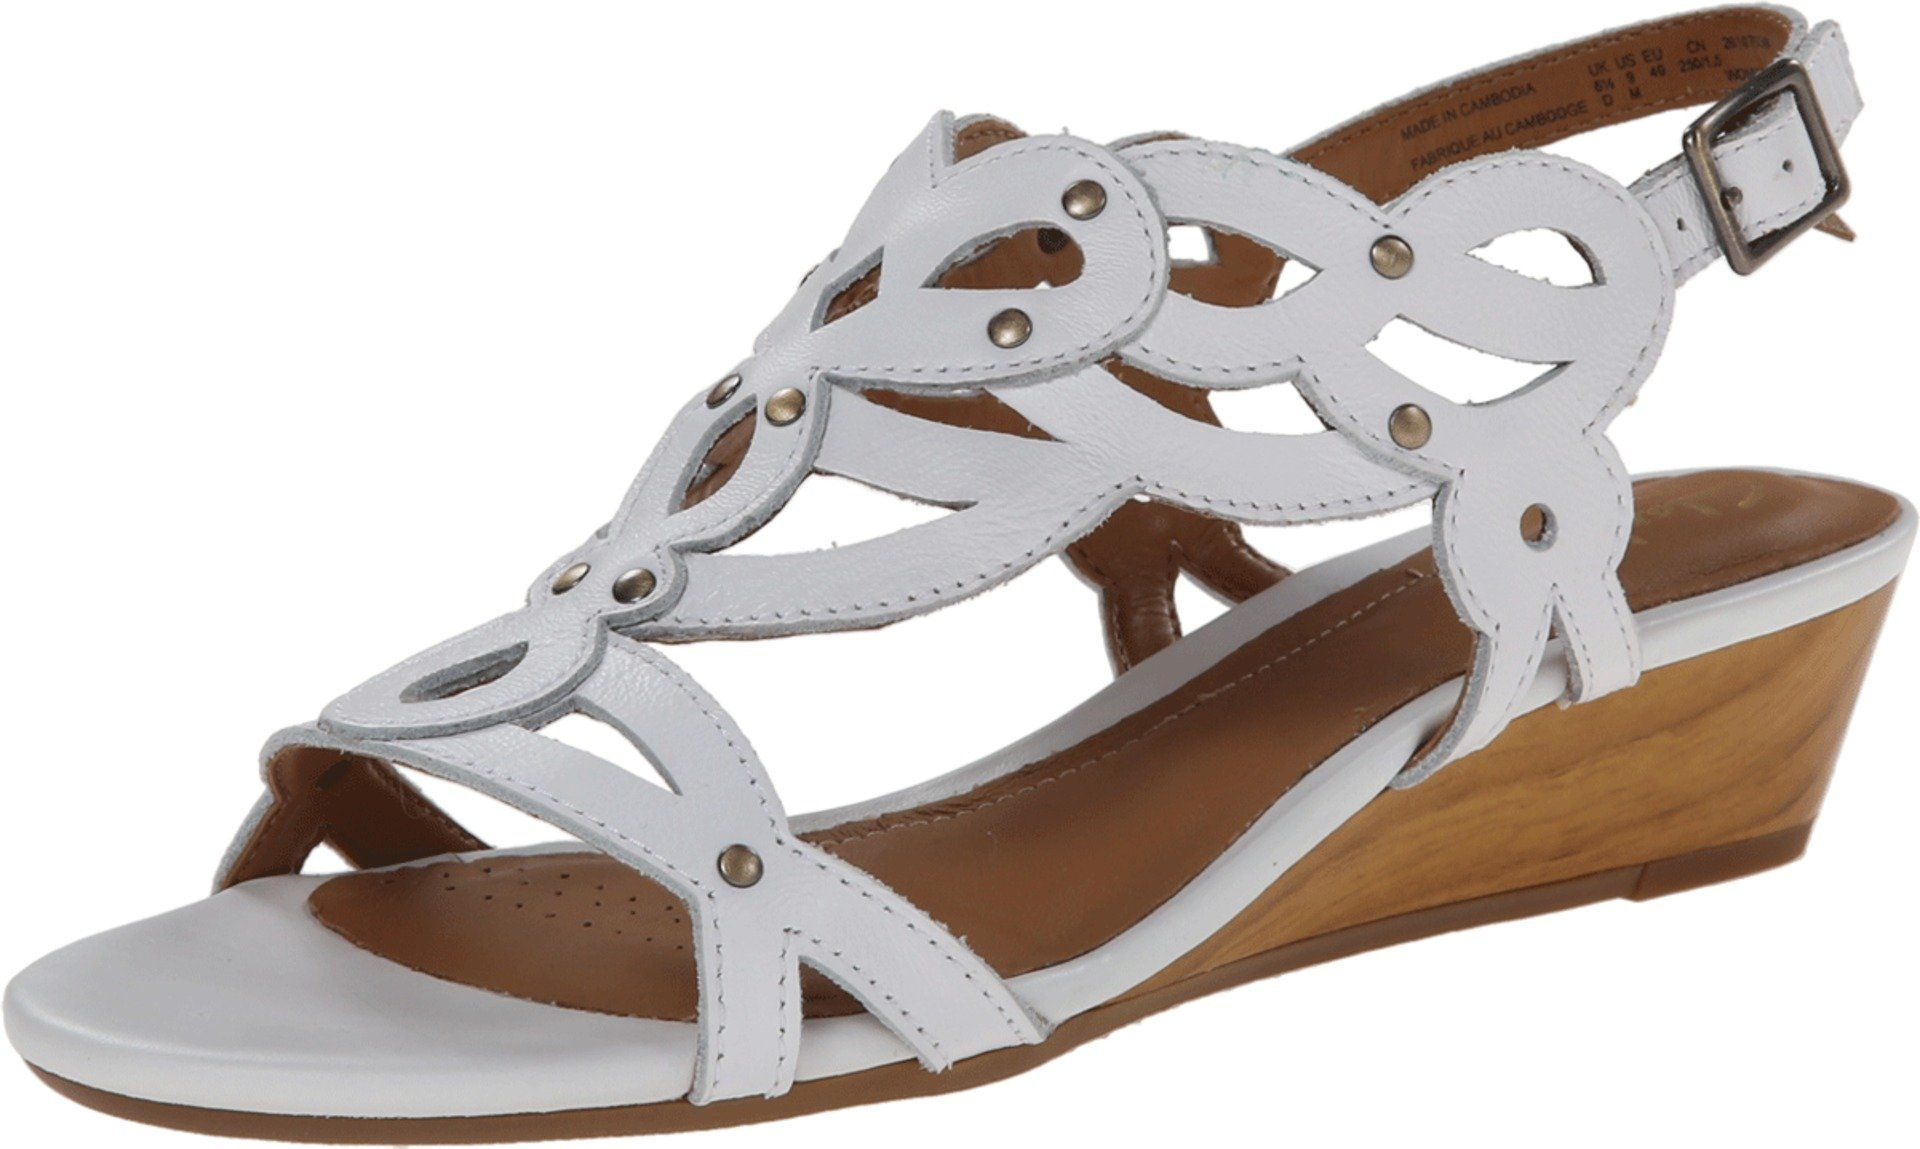 Clarks Women's Playful Tunes Low Wedge Sandals,White Leather,9.5. Women's  Clarks,